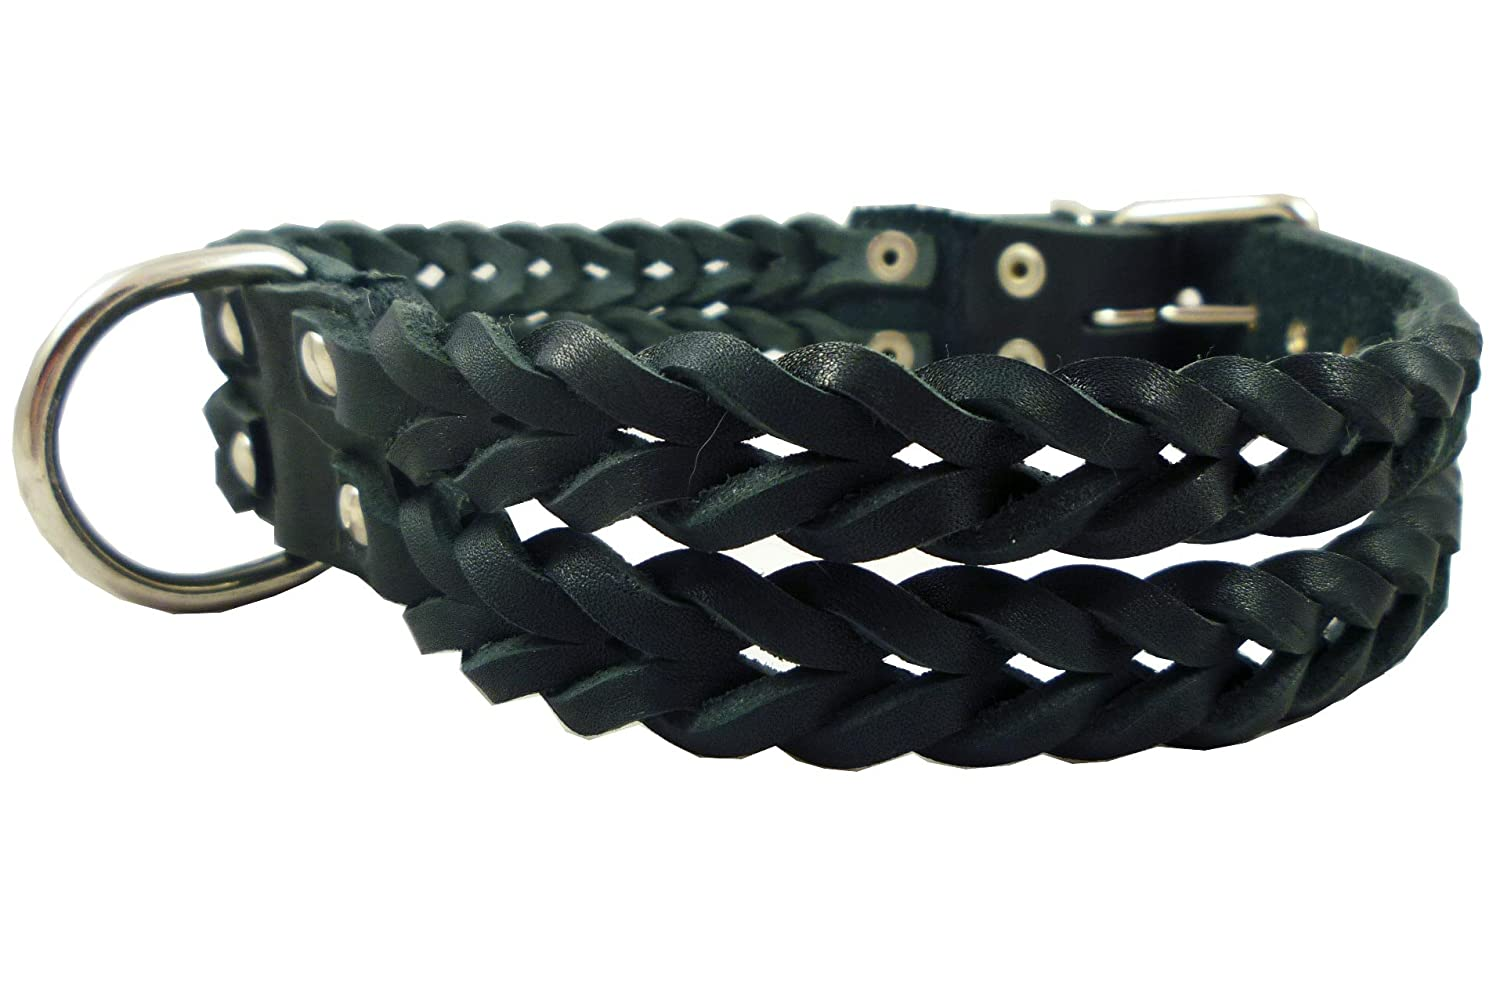 Double Braid Black Genuine Leather Dog Collar Braided 1.5  Wide, Fits 19.5 -22.5  Neck, Large